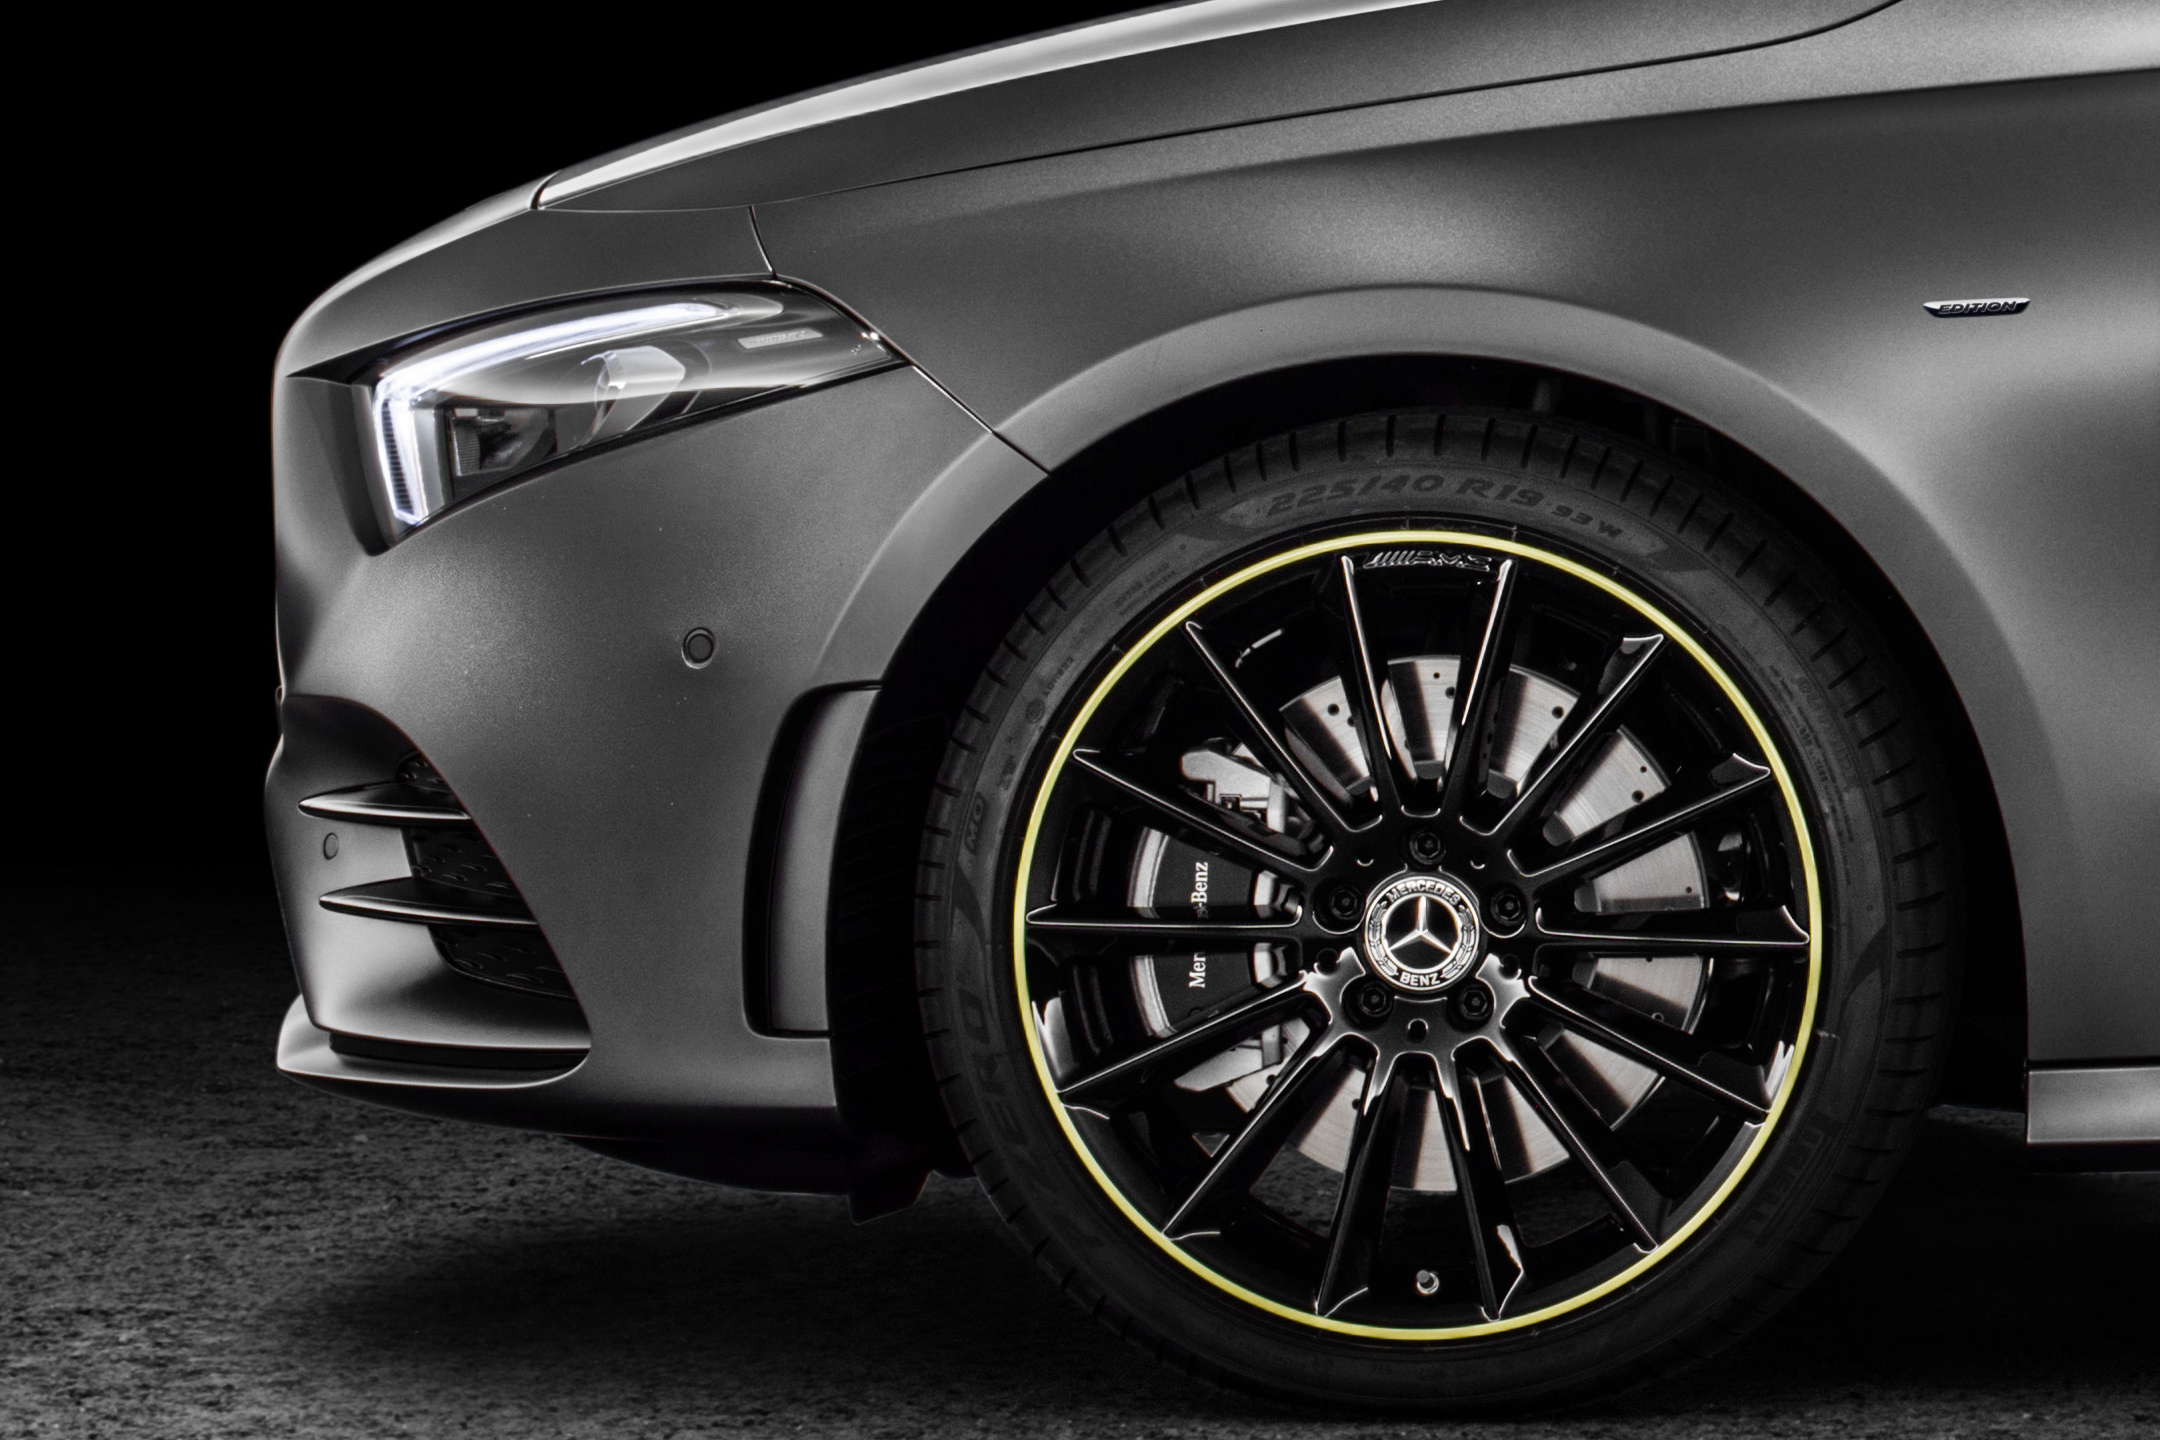 Mercedes-Benz A-Class - 2018 - front wheel / jante avant